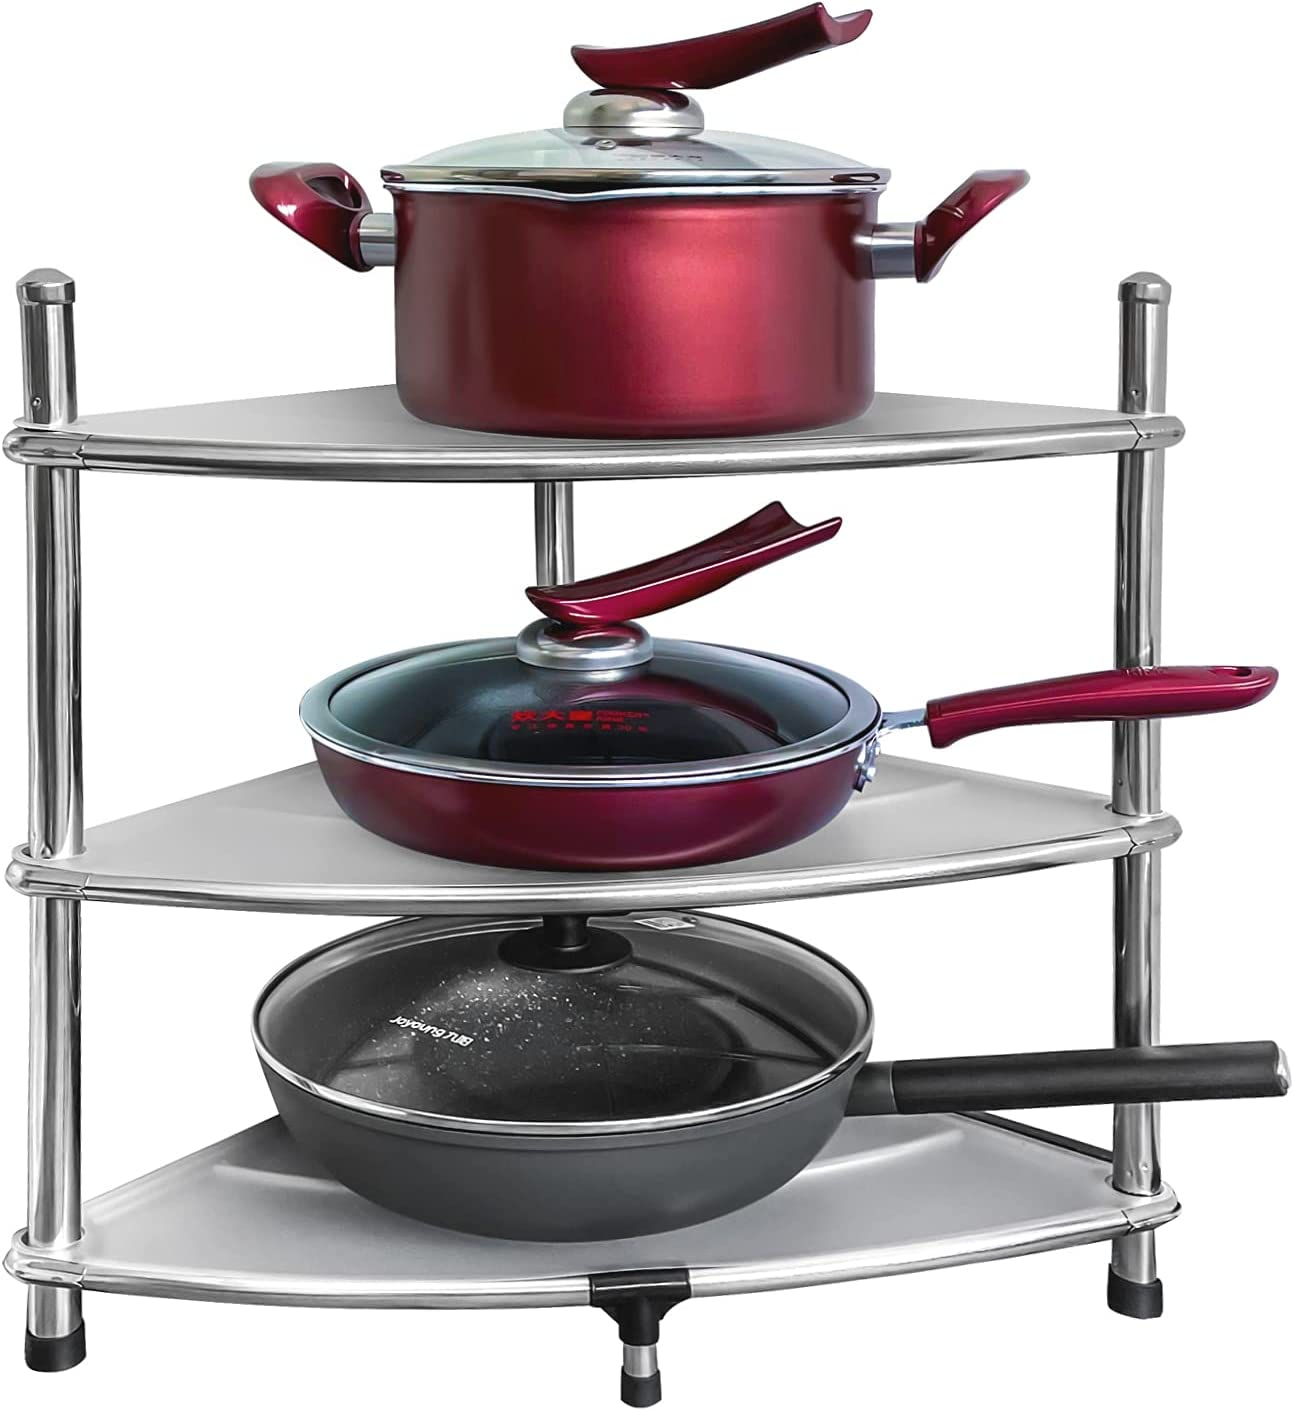 Pots Inventory cleanup selling sale and Pans Organizer 2 Challenge the lowest price Stand for Cab DUU Pack